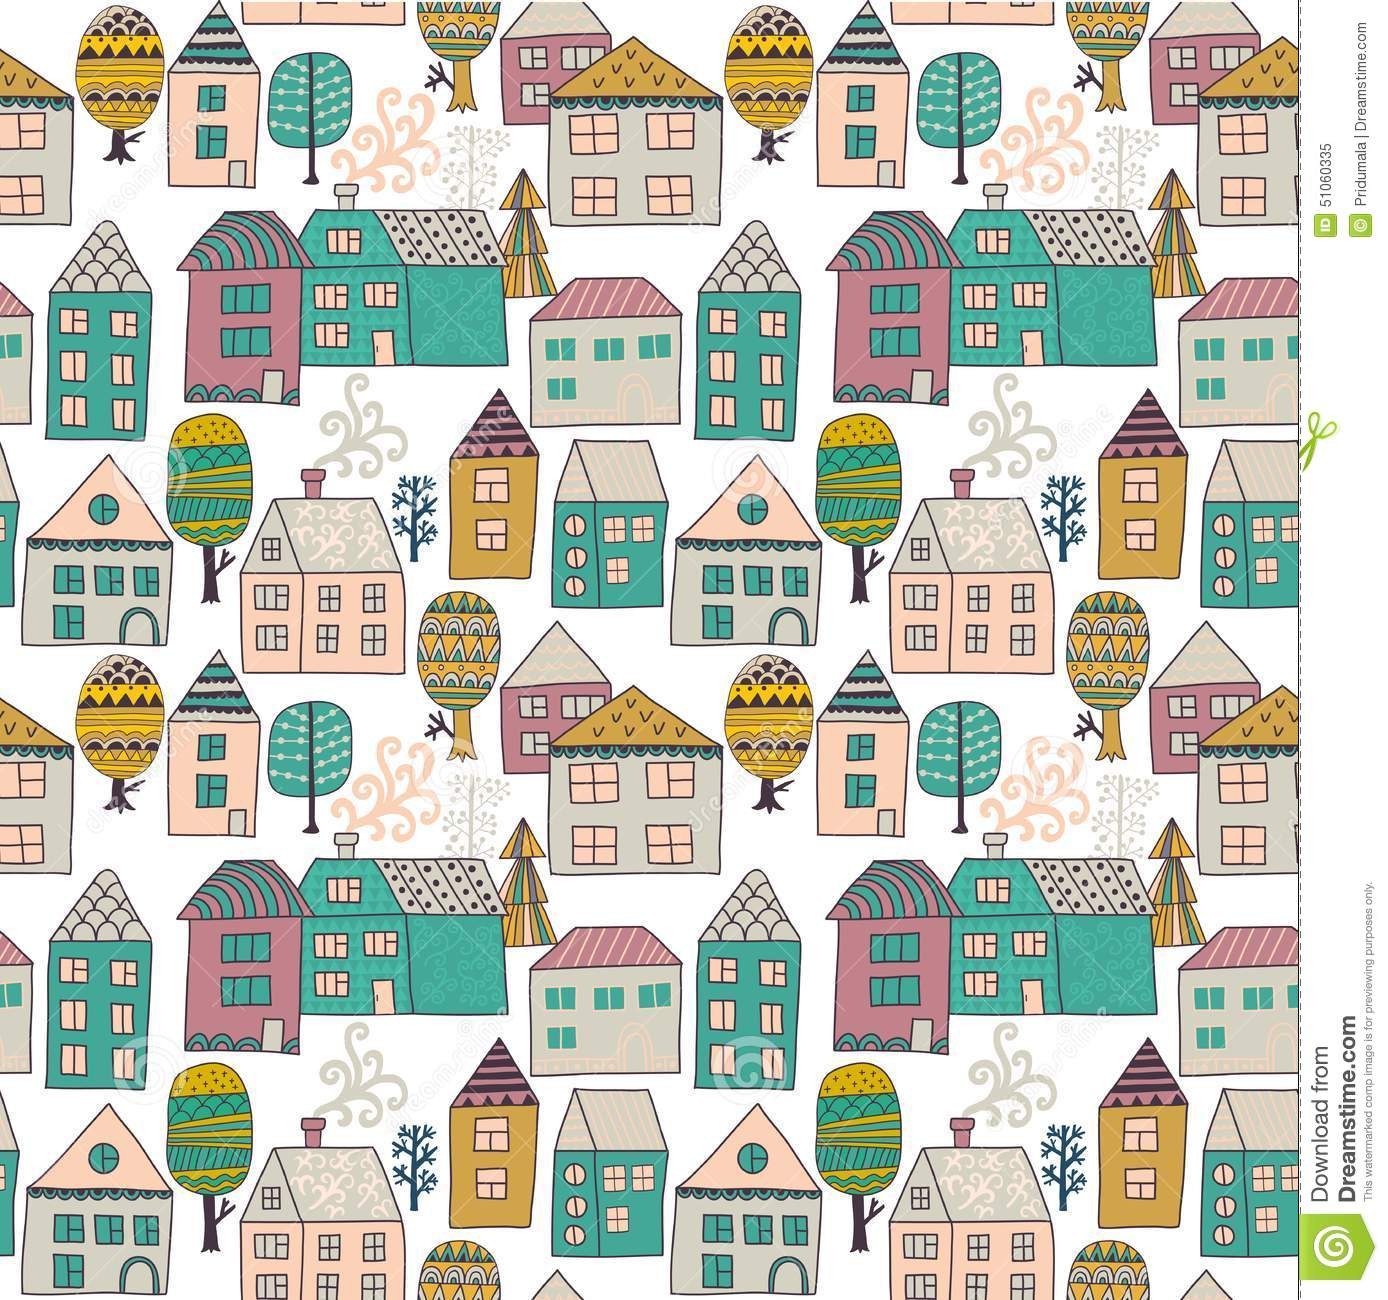 Seamless hand drawn house pattern royalty free stock photo for House pattern